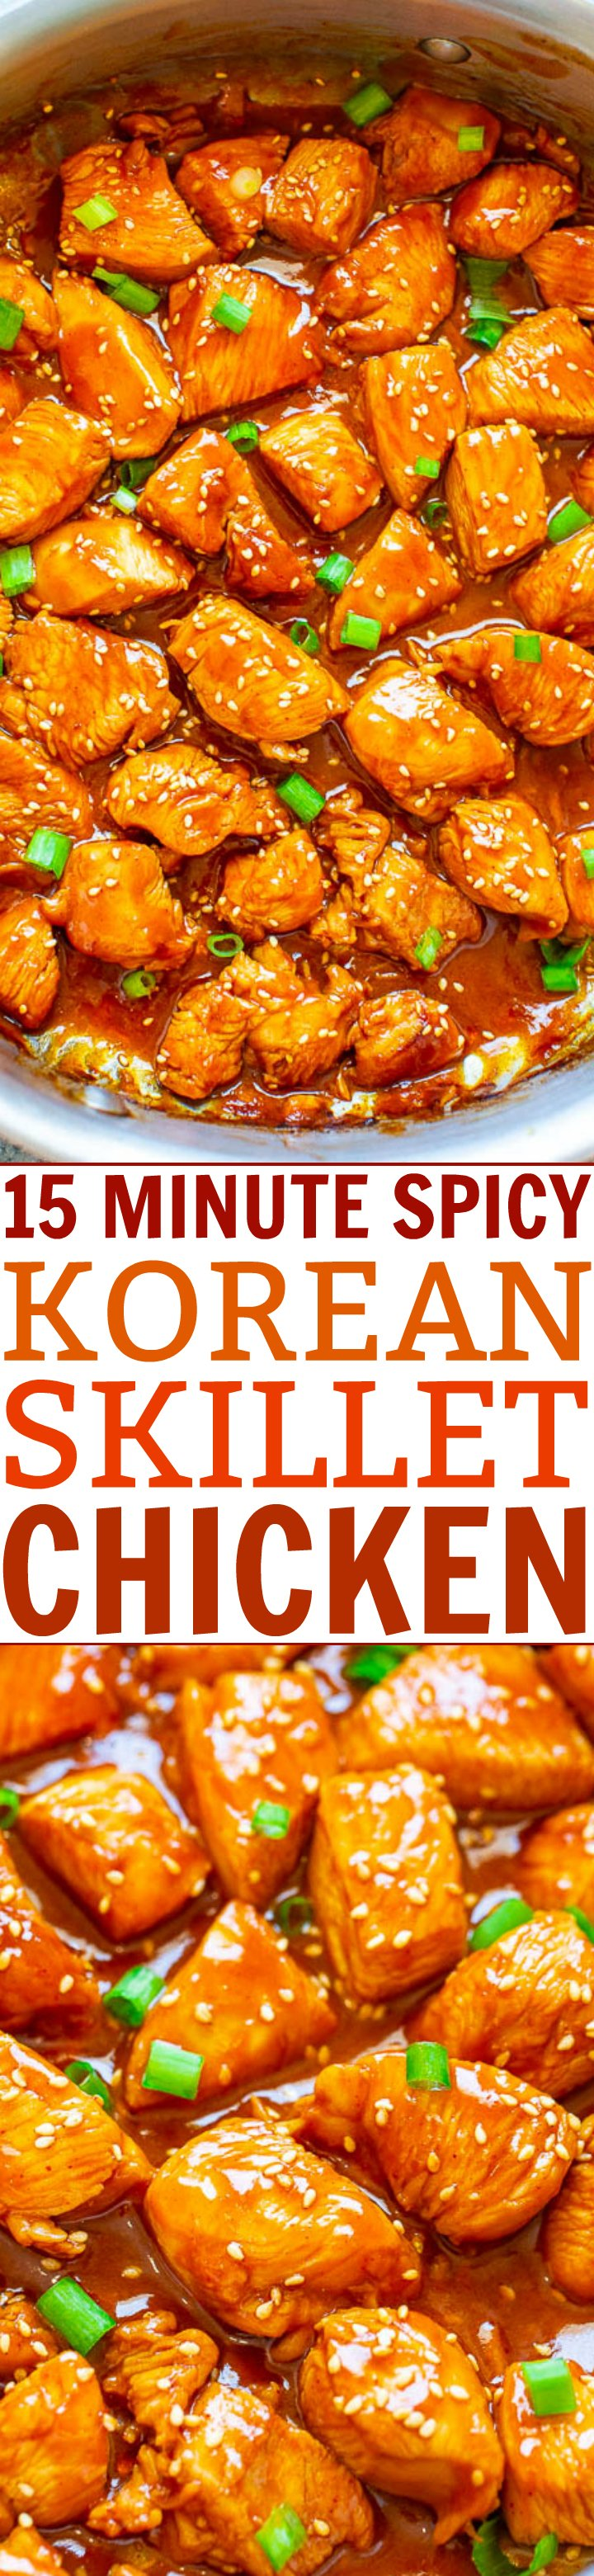 15-Minute Spicy Korean Skillet Chicken – Fast, EASY, perfectly SPICY chicken that's so tender and juicy!! Who needs takeout or a restaurant when you can make this AWESOME chicken at home in 15 minutes!!